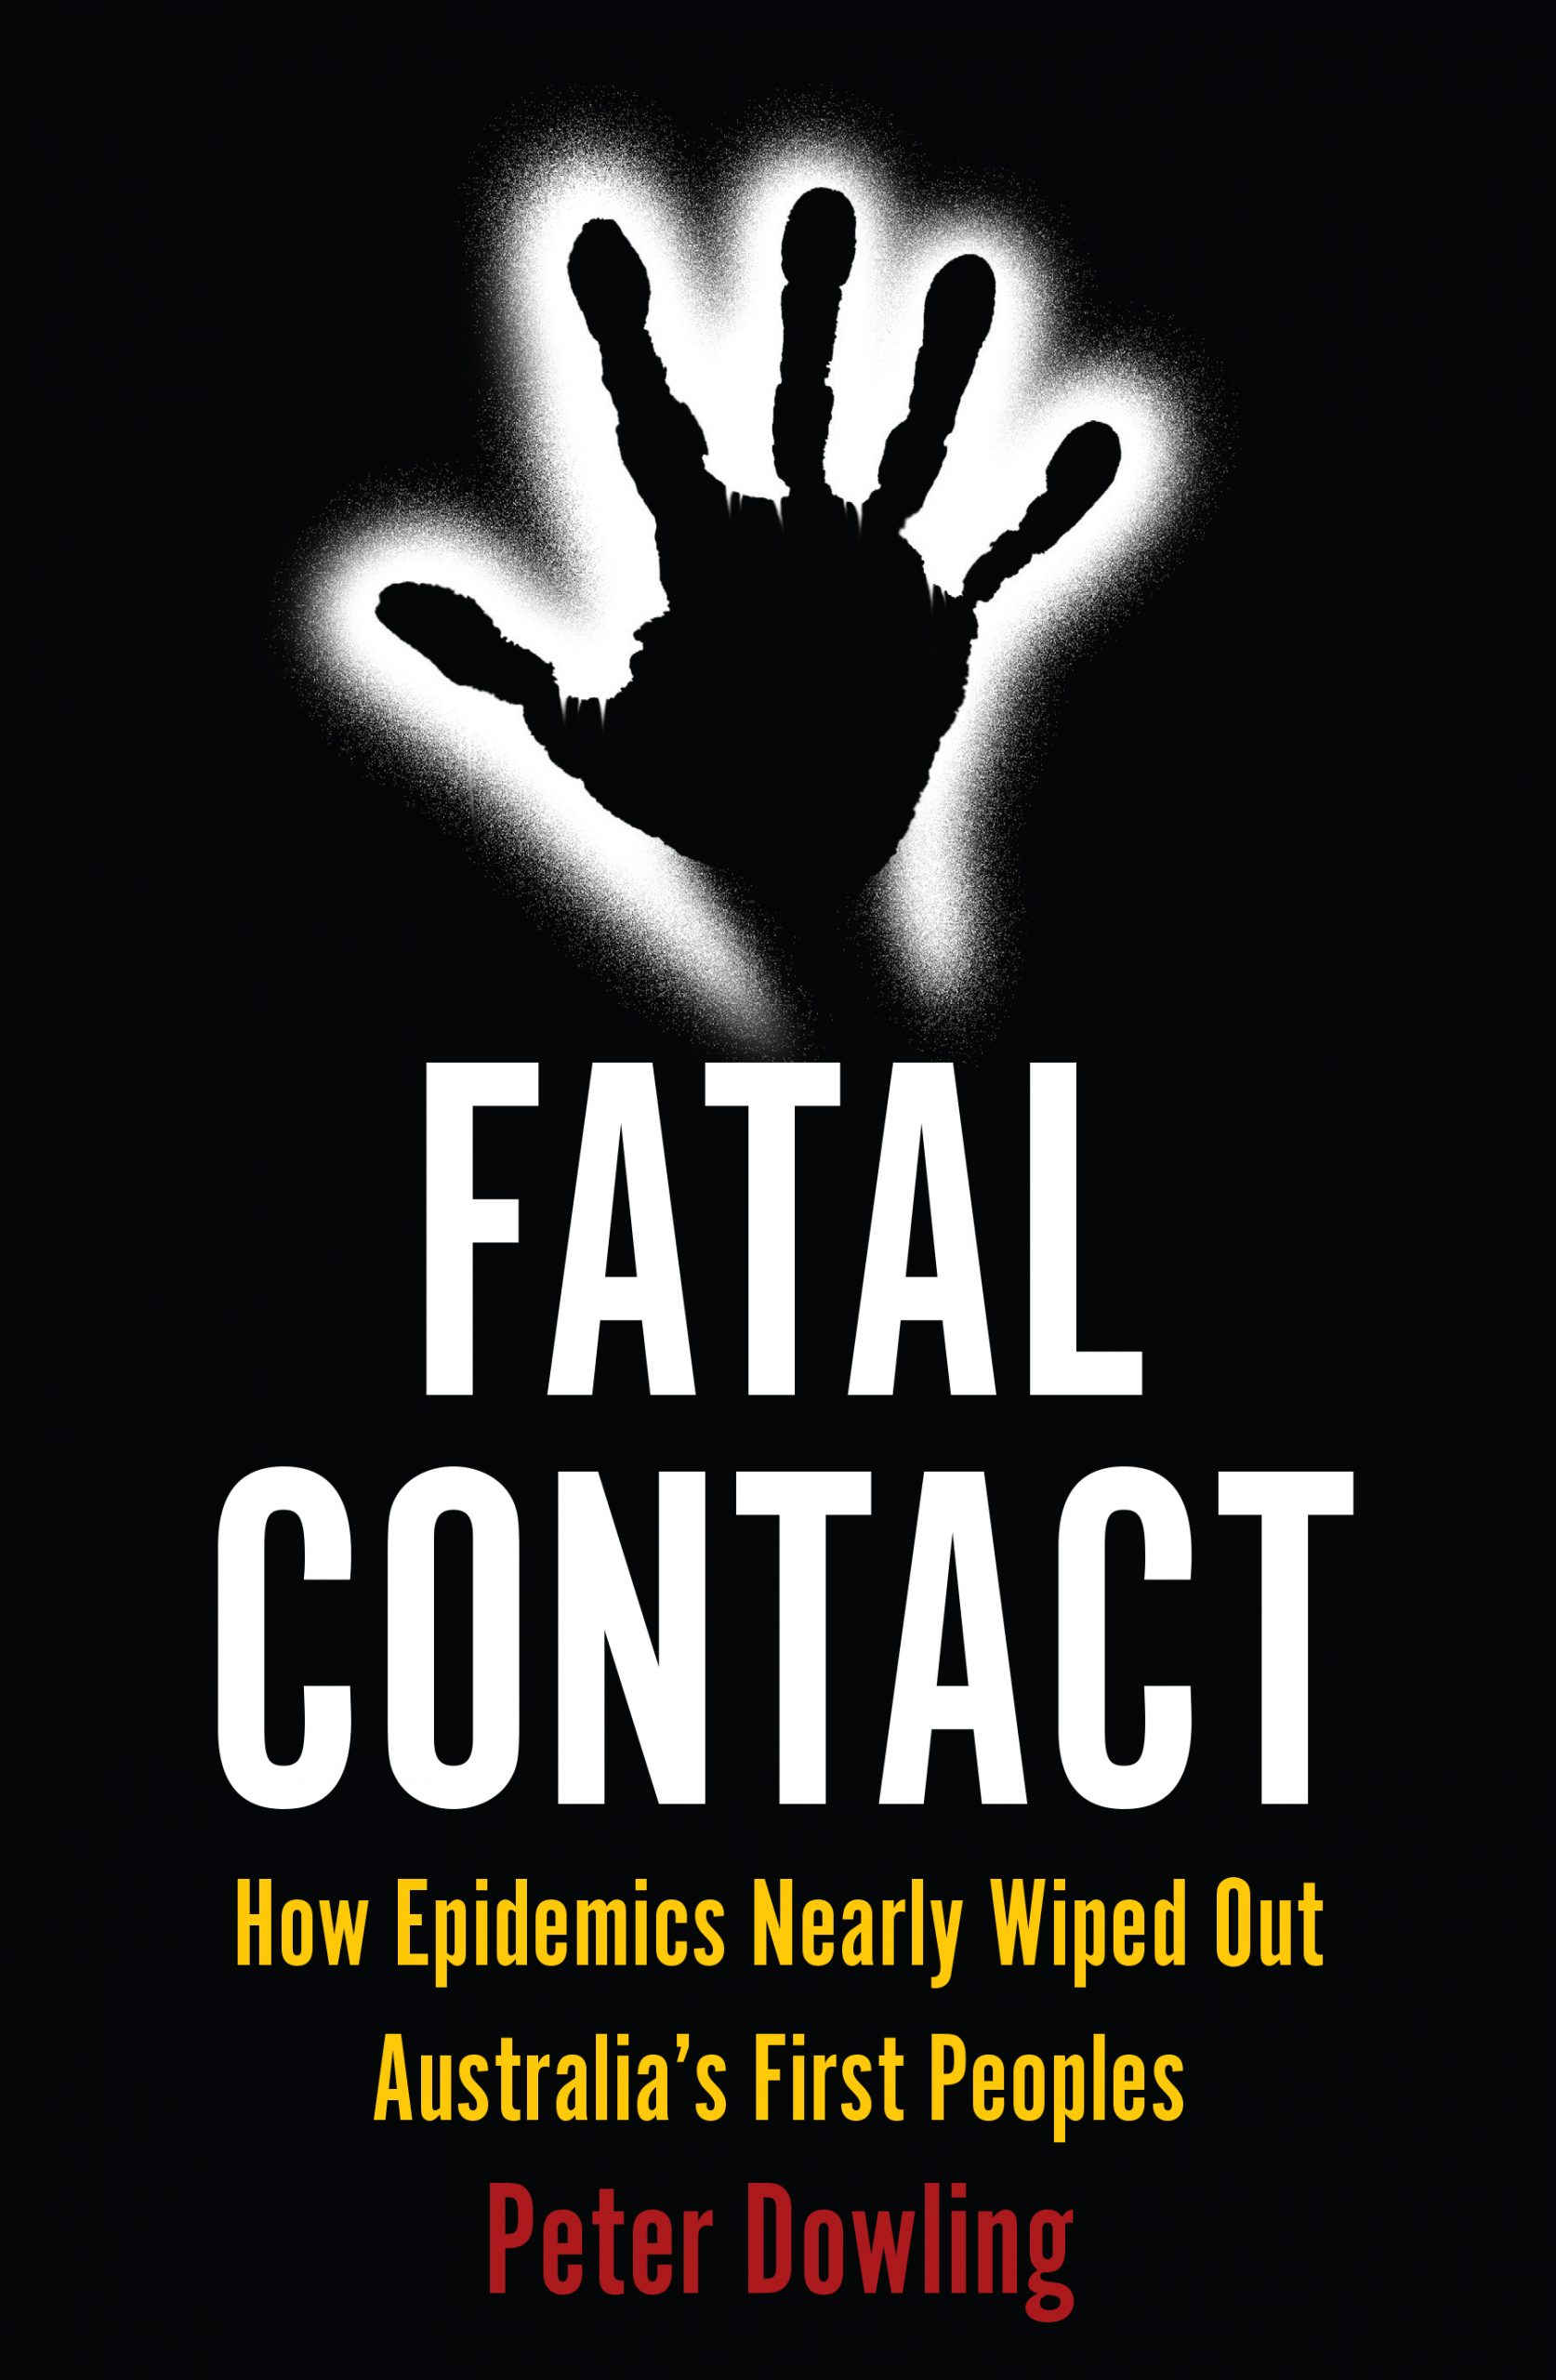 Fatal Contact: How Epidemics Nearly Wiped Out Australia's First Peoples